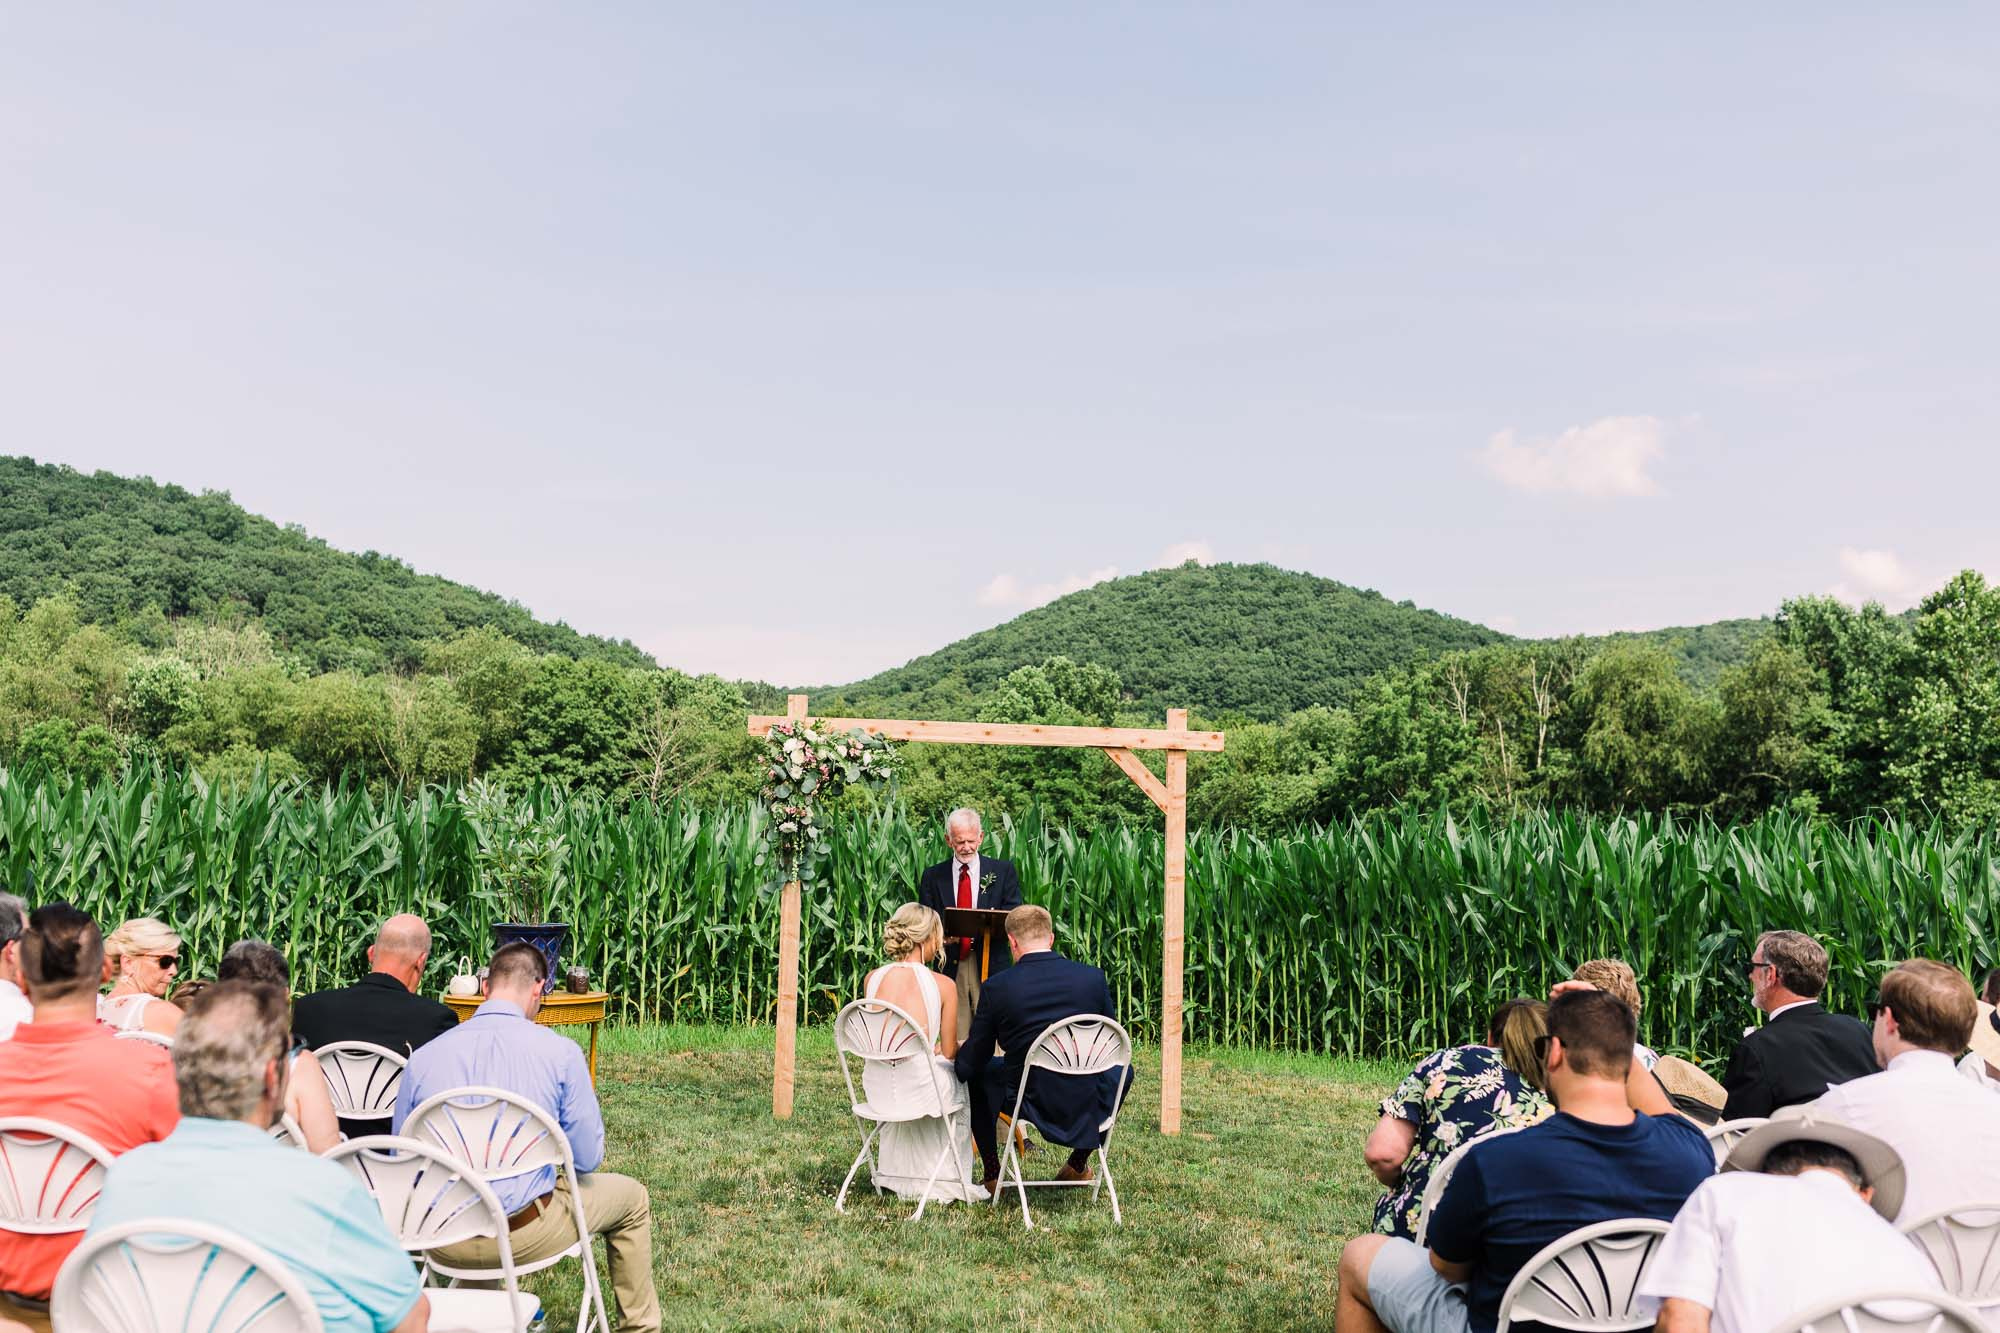 Muncy-backyard-farm-wedding-7812.jpg